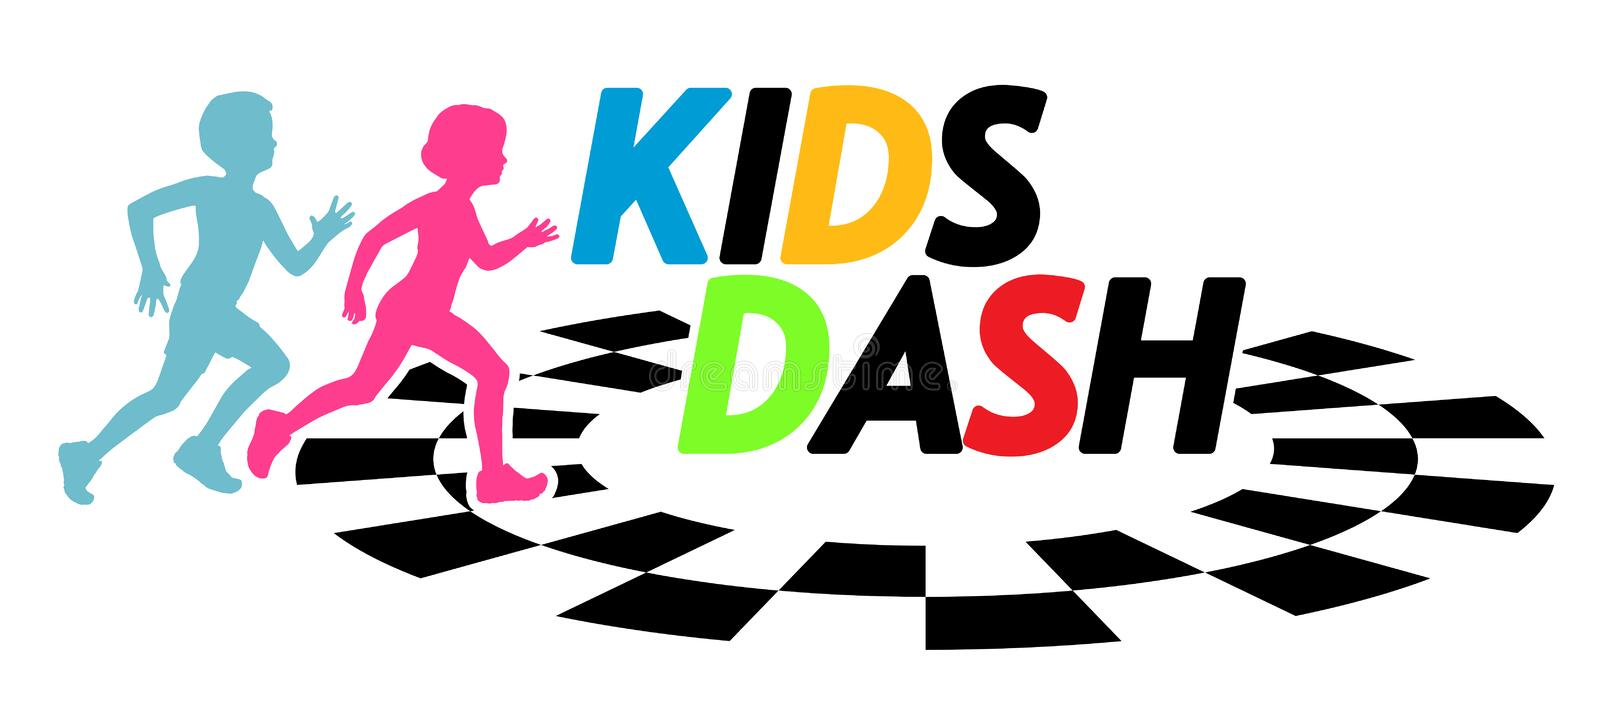 Kids Dash Race Running Event Illustration royalty free illustration